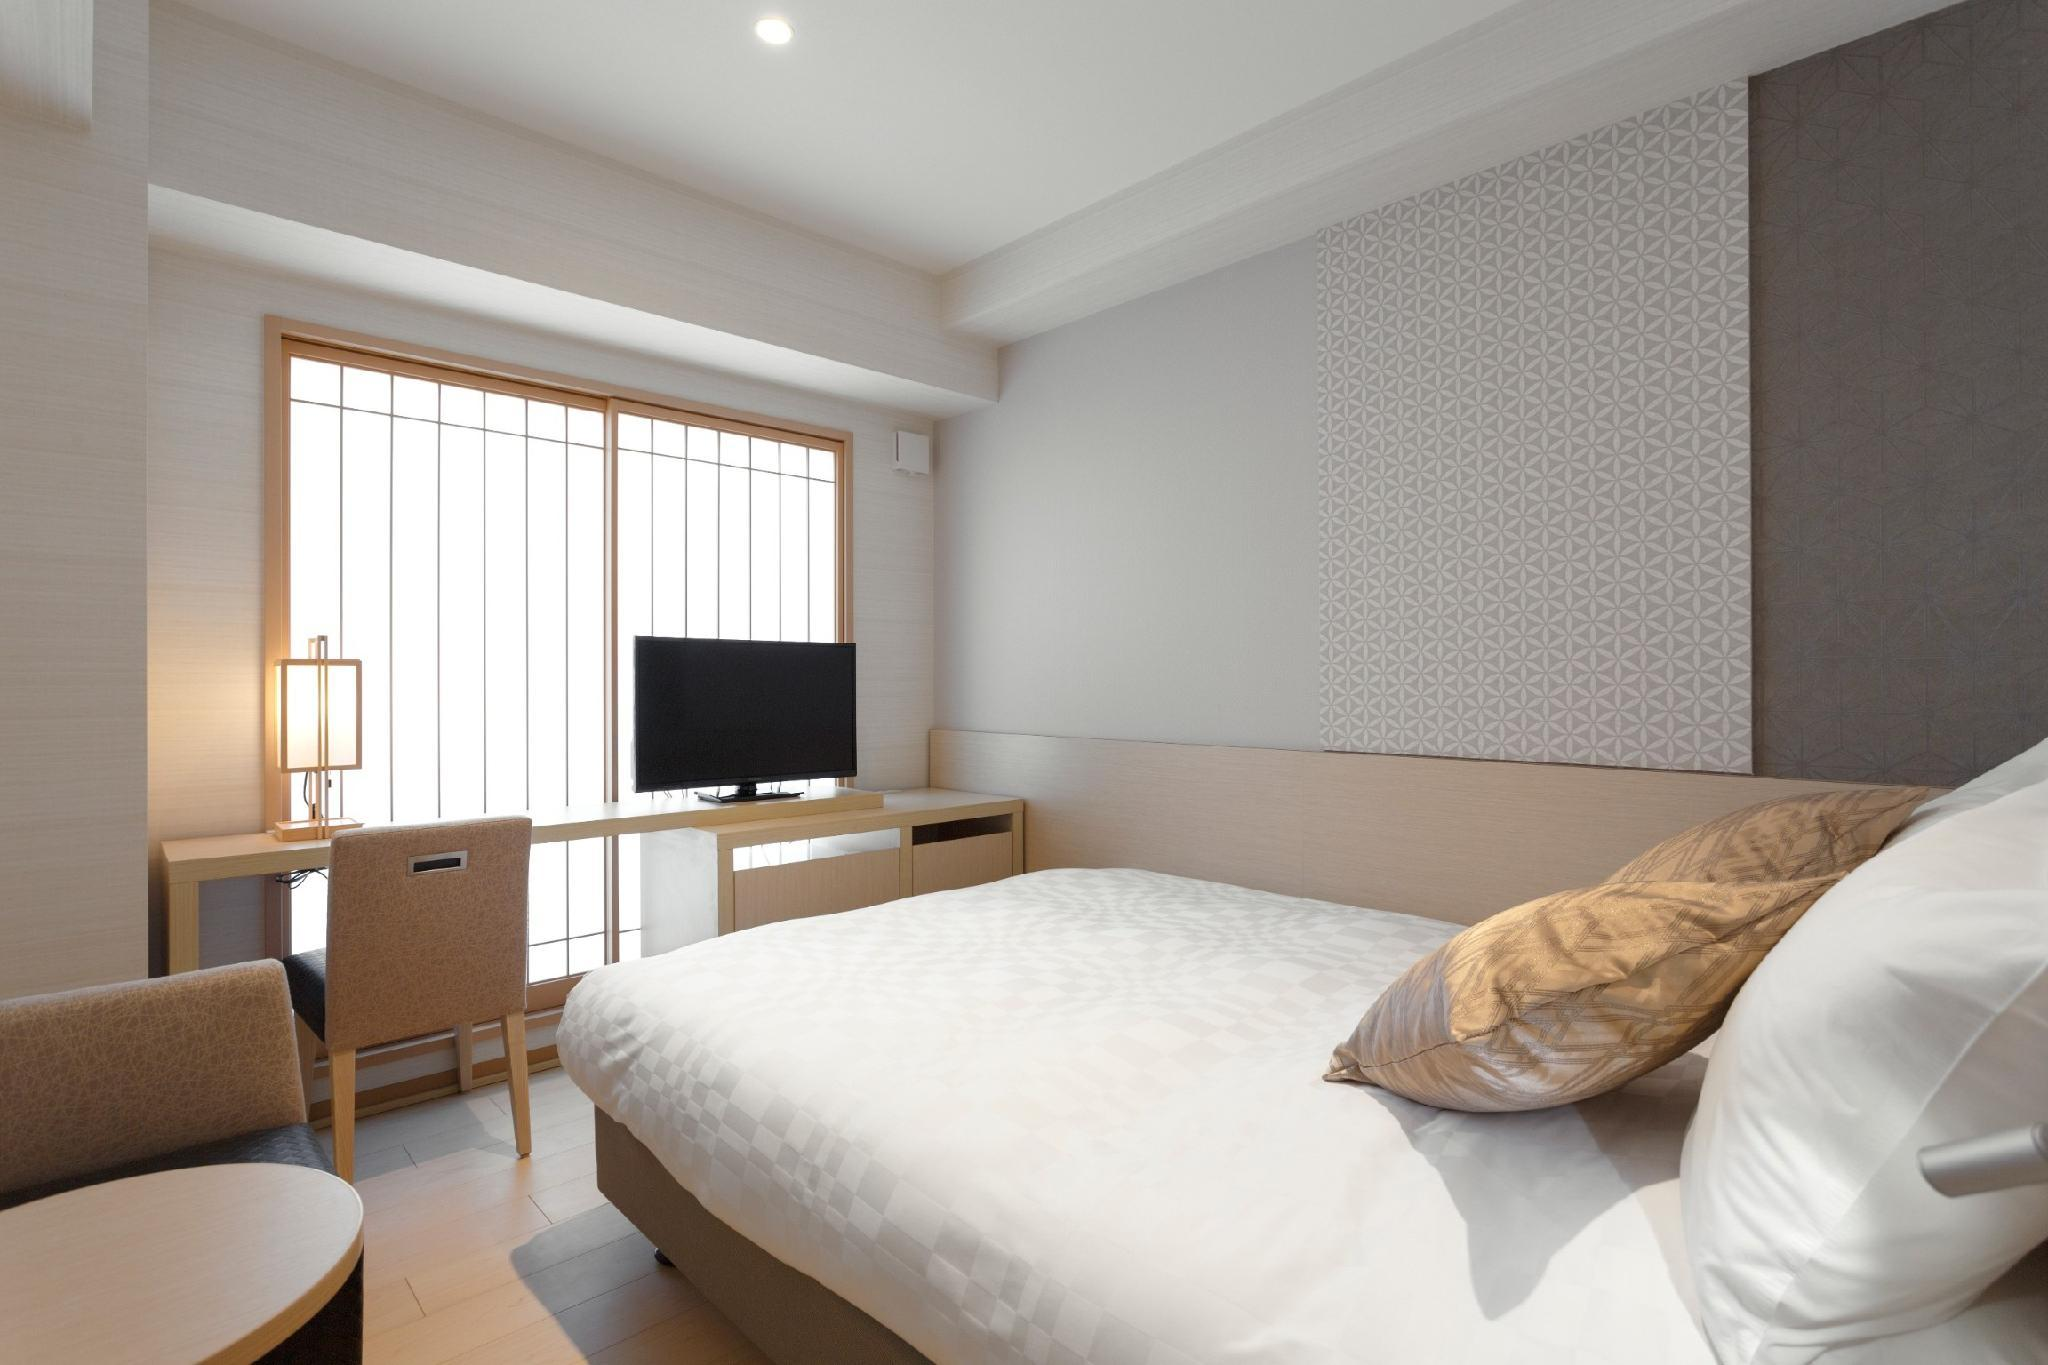 標準雙人房 - 禁菸 (Moderate Double Room - Non-Smoking)